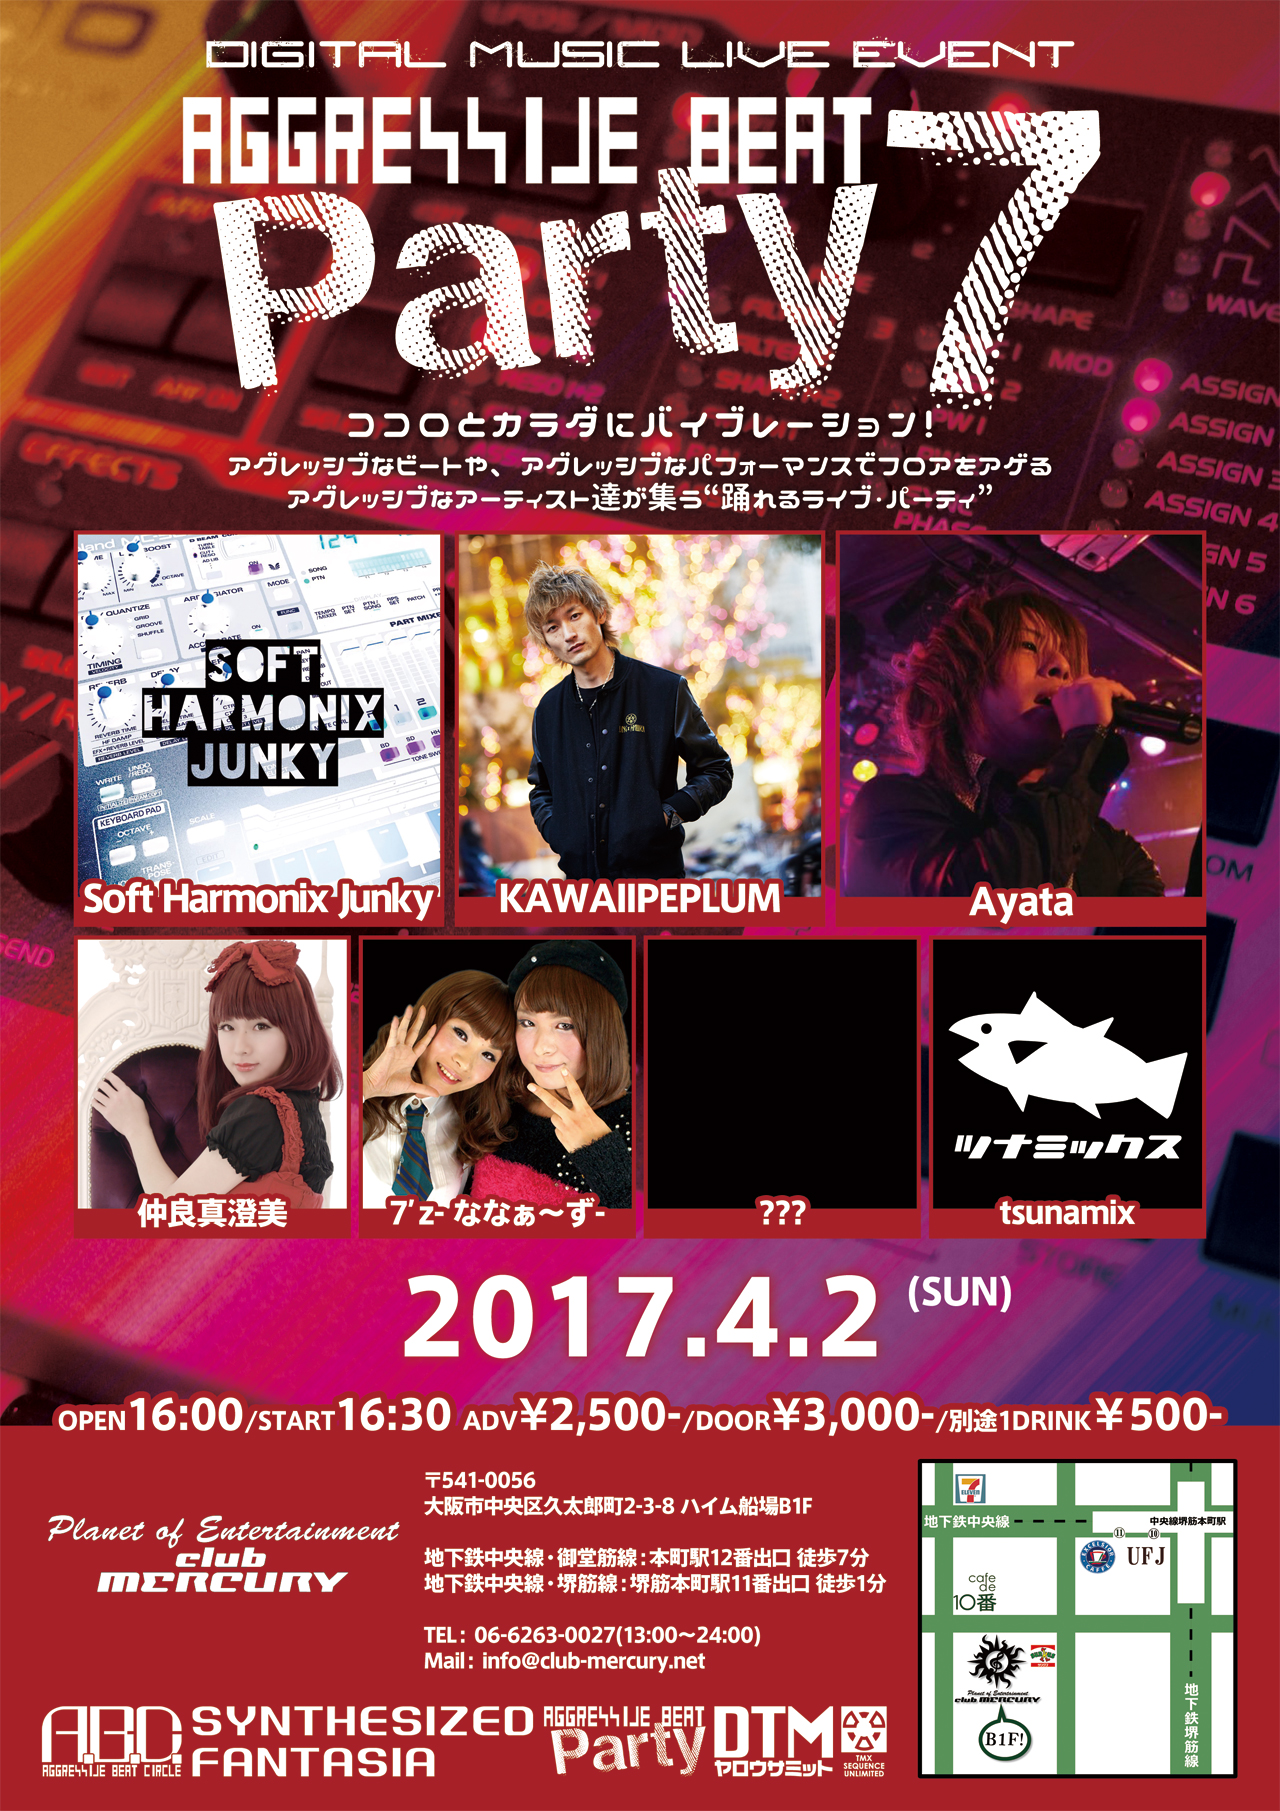 AGGRESSIVE BEAT PARTY 7